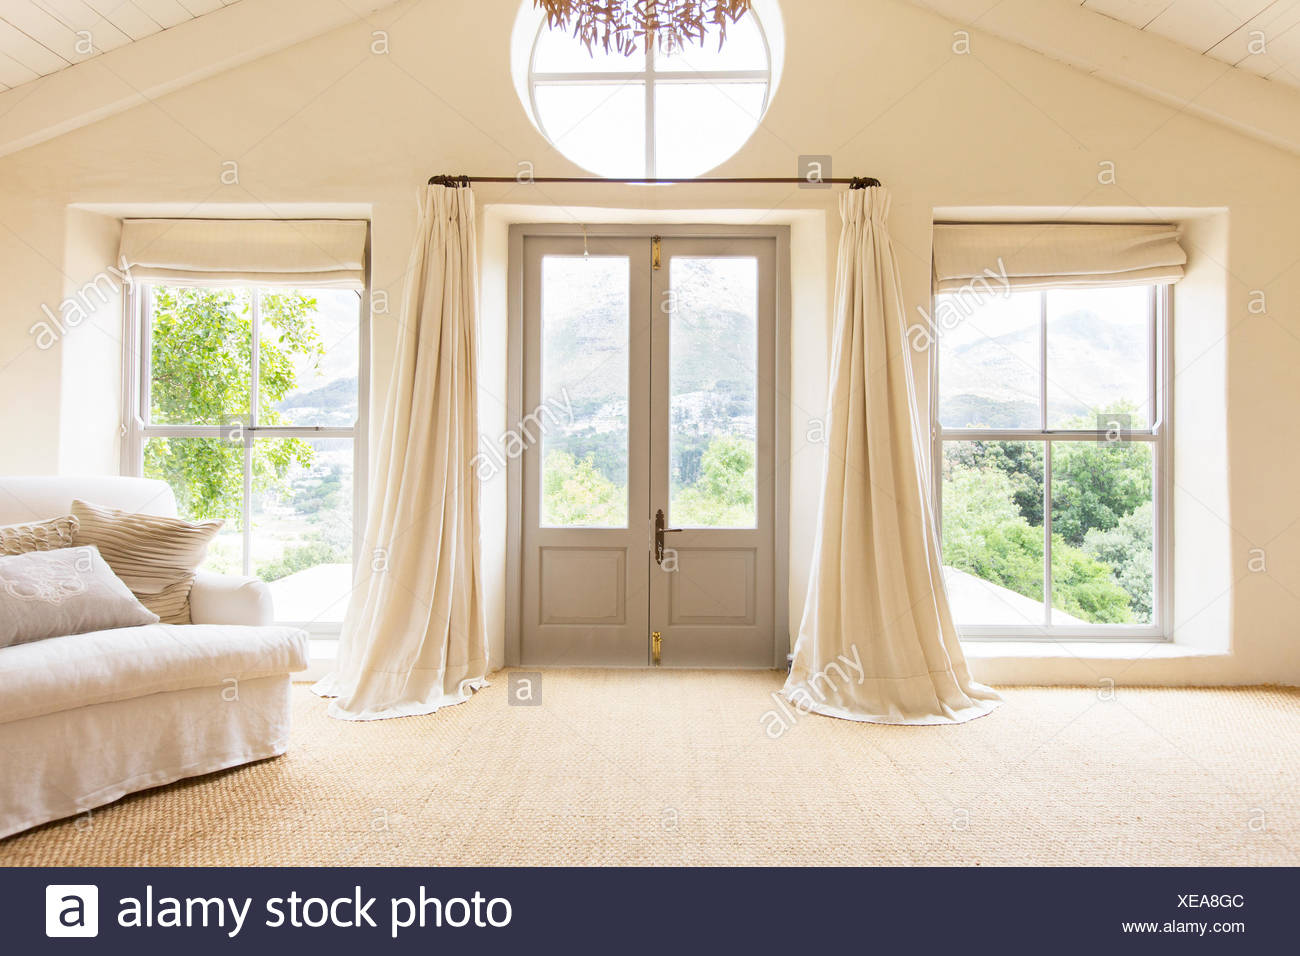 Curtains and front doors of rustic house - Stock Image